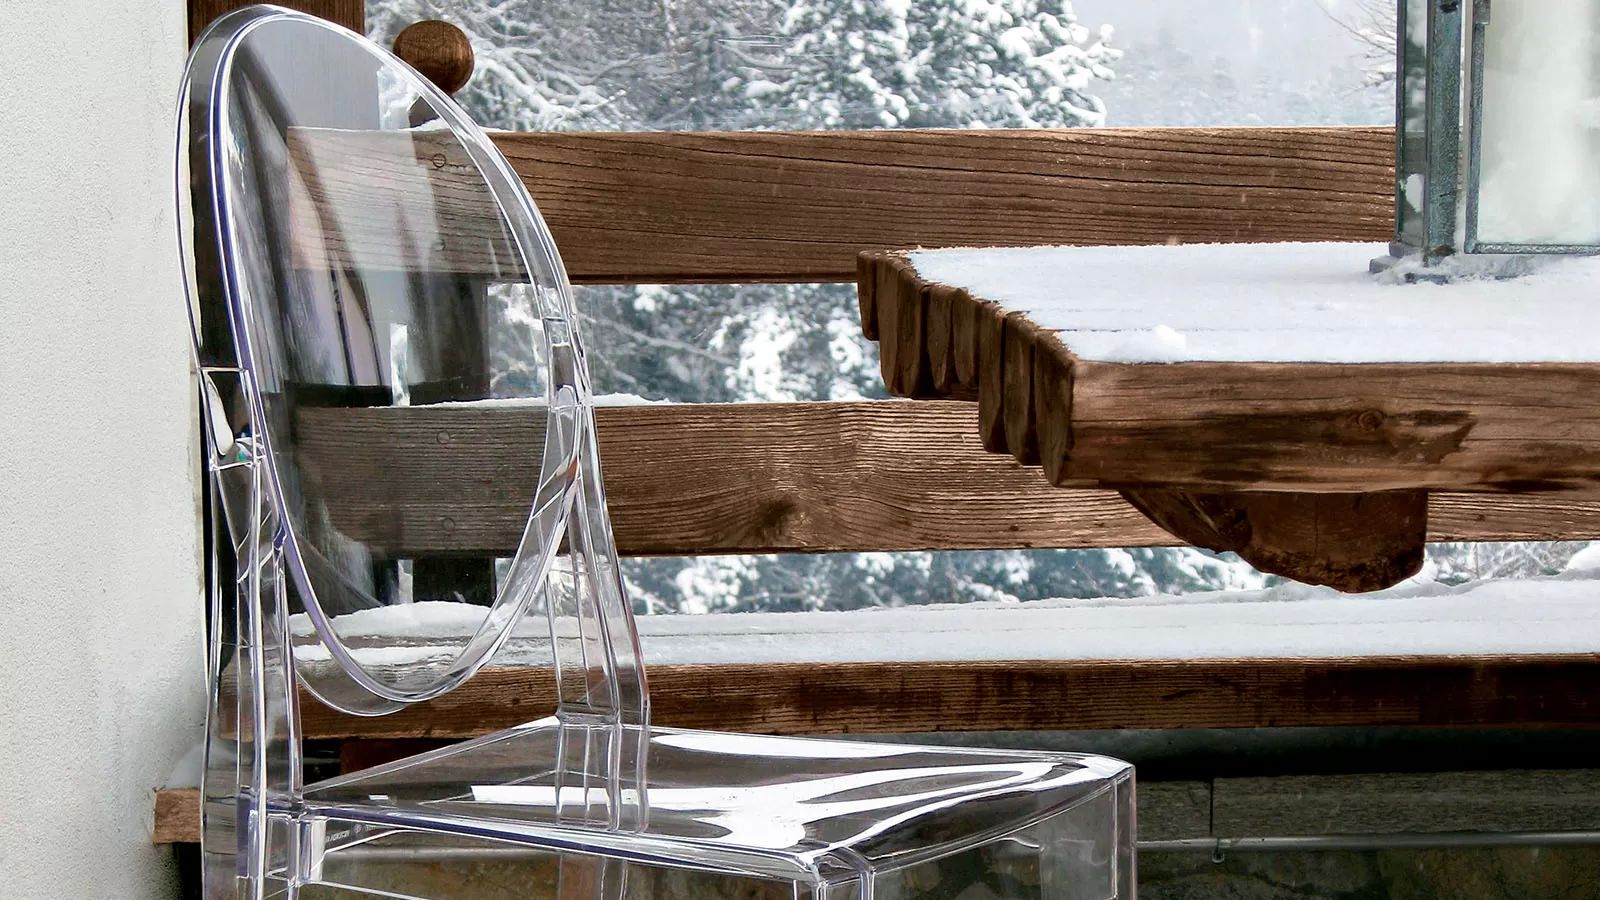 Louis Ghost New Product of Philippe Starck's Check Out the New Product of Philippe Starck's Ghost Victoria trans4